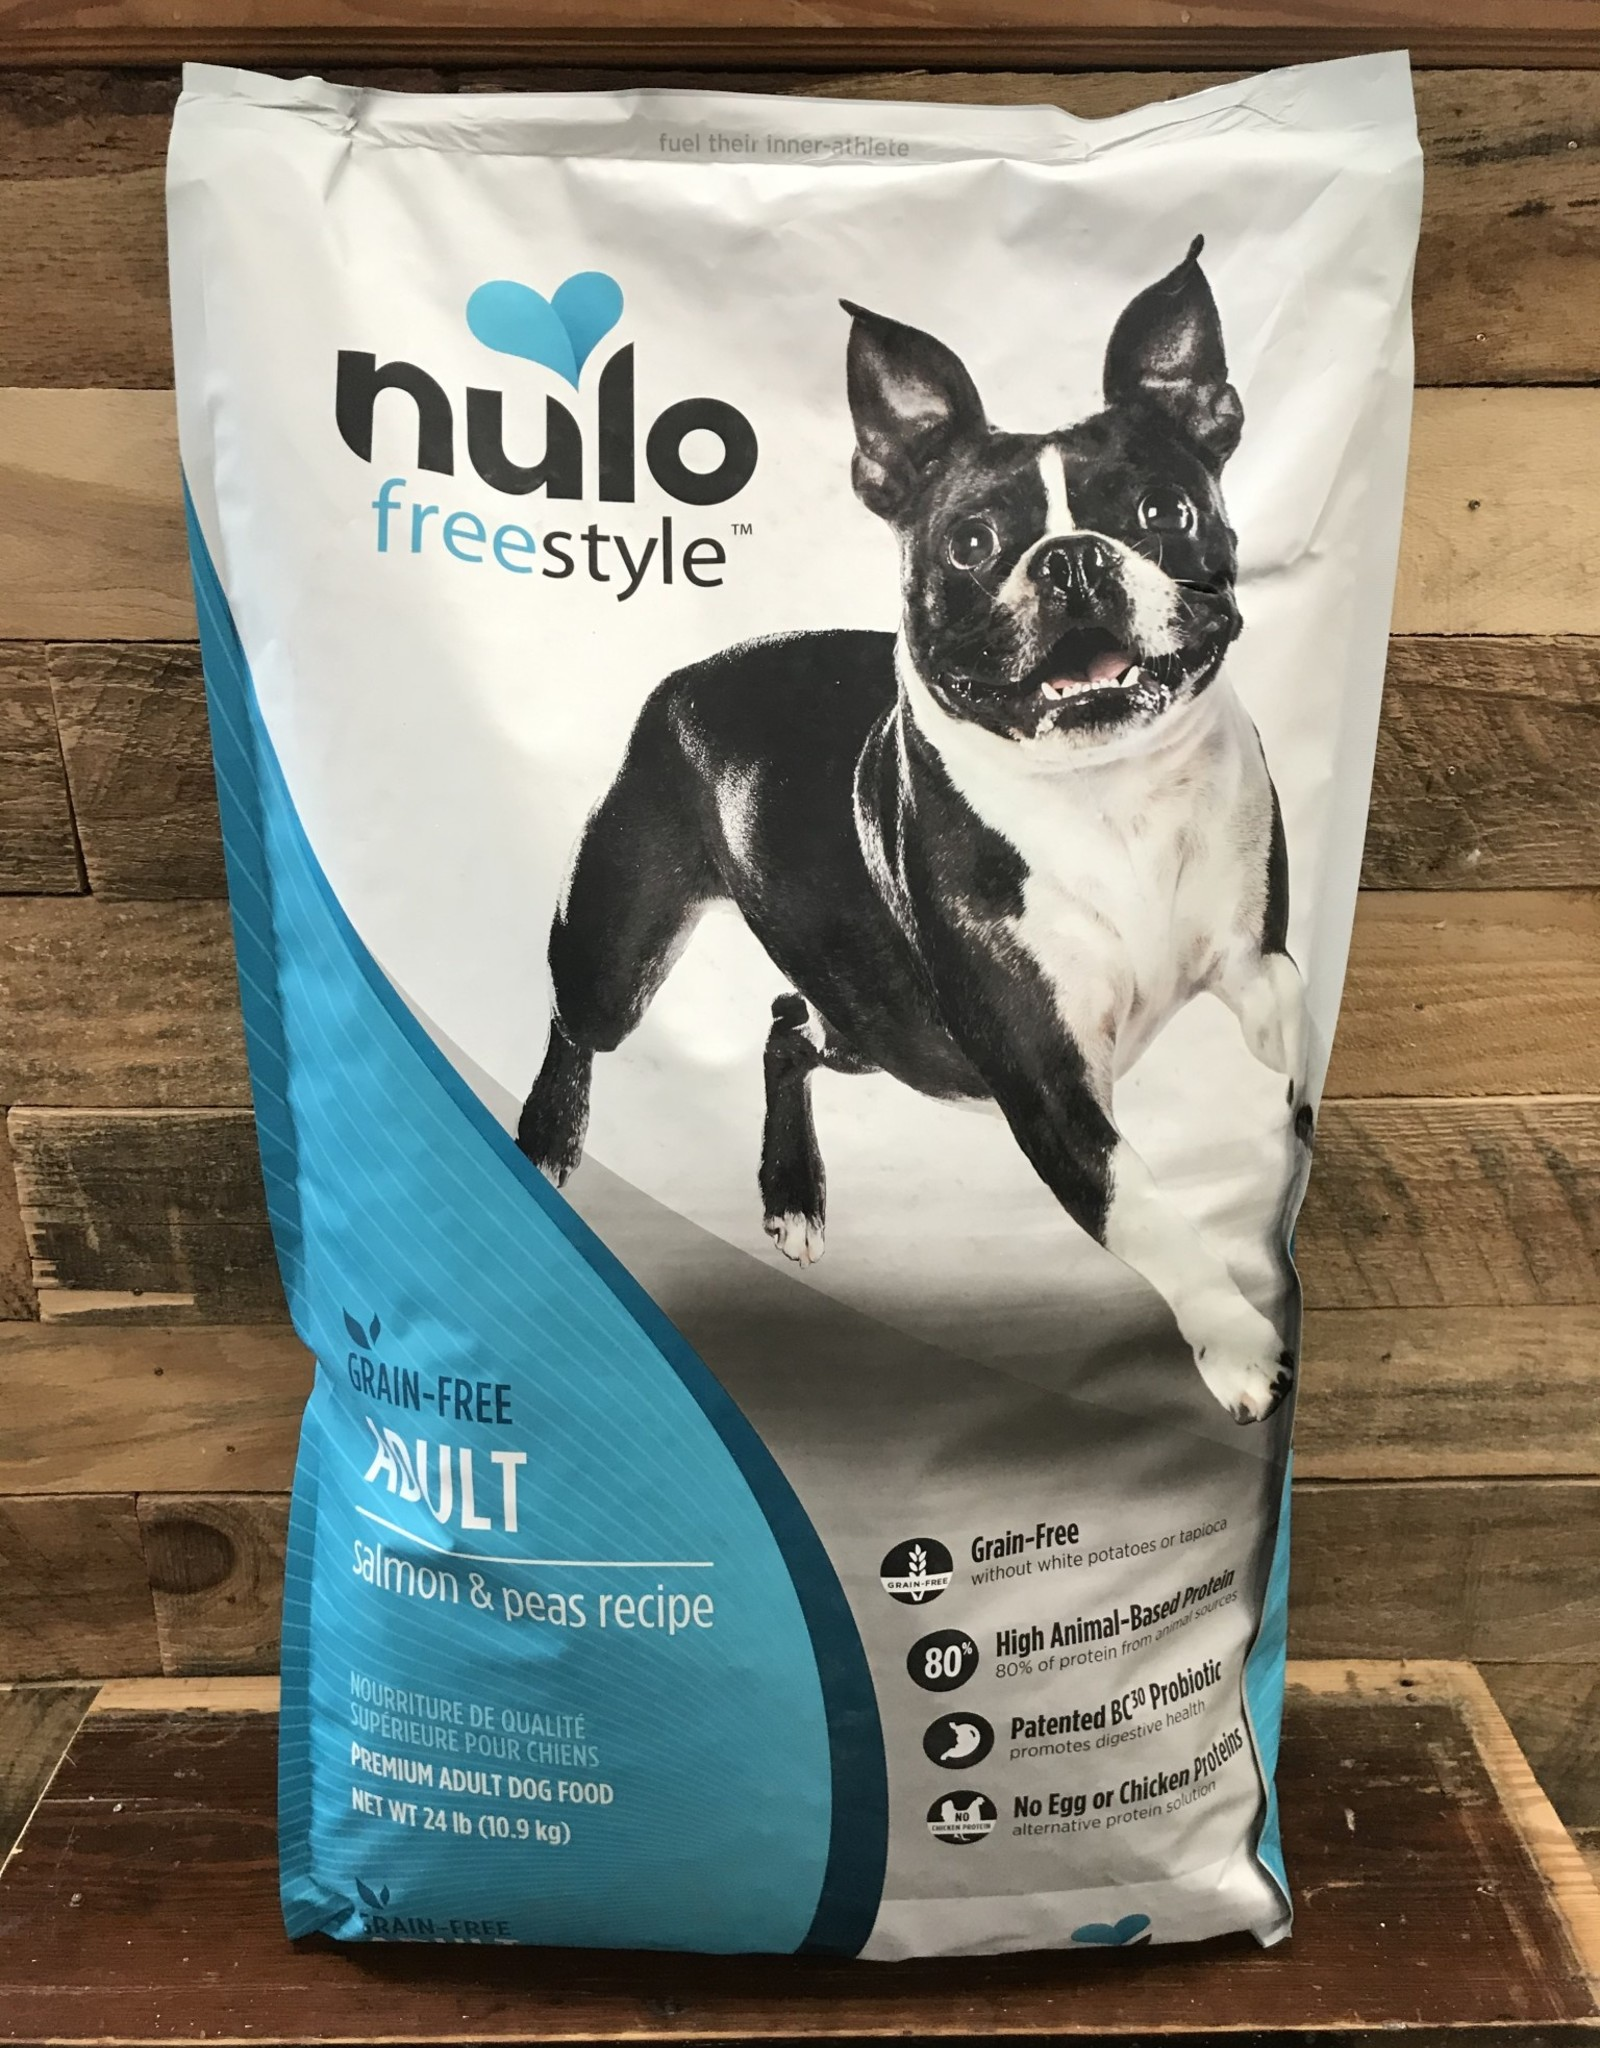 Nulo Nulo FreeStyle 24# Grain Free Adult Salmon & Peas